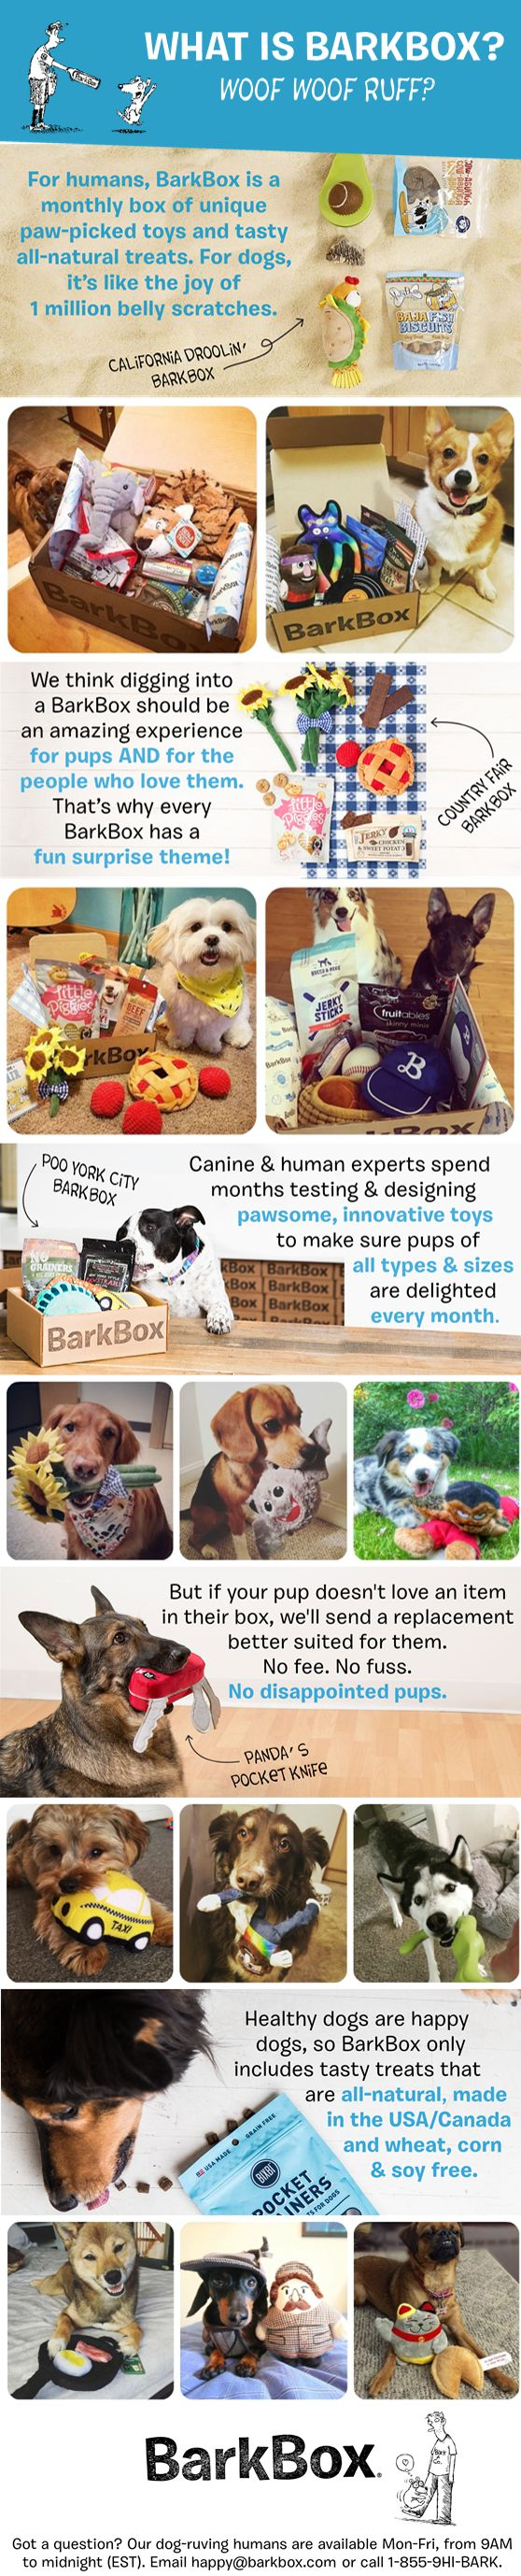 BarkBox is a monthly themed box of fun toys and all-natural treats and chews. Getting a BarkBox is easy, just go to BarkBox.com, choose a dog size and a plan length. Plans start at $20/month. Fetch BarkBox today!